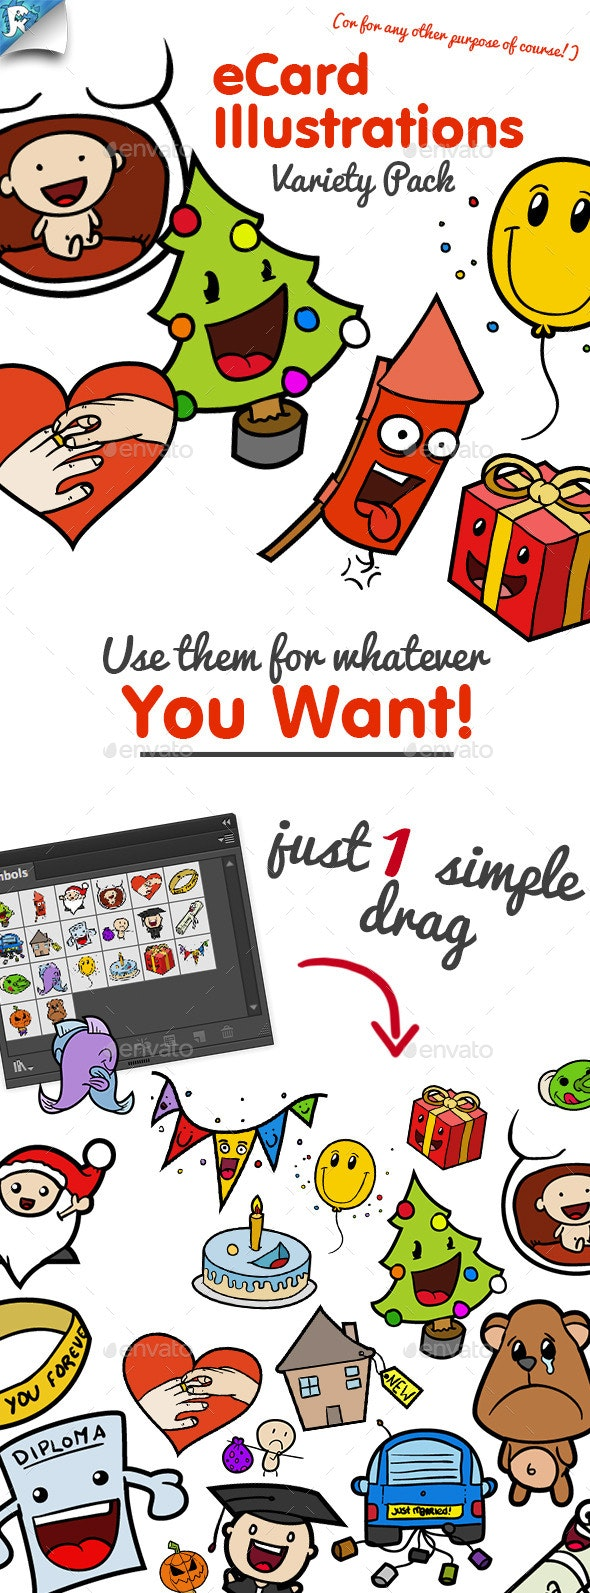 eCard Illustrations - Variety Pack - Miscellaneous Characters